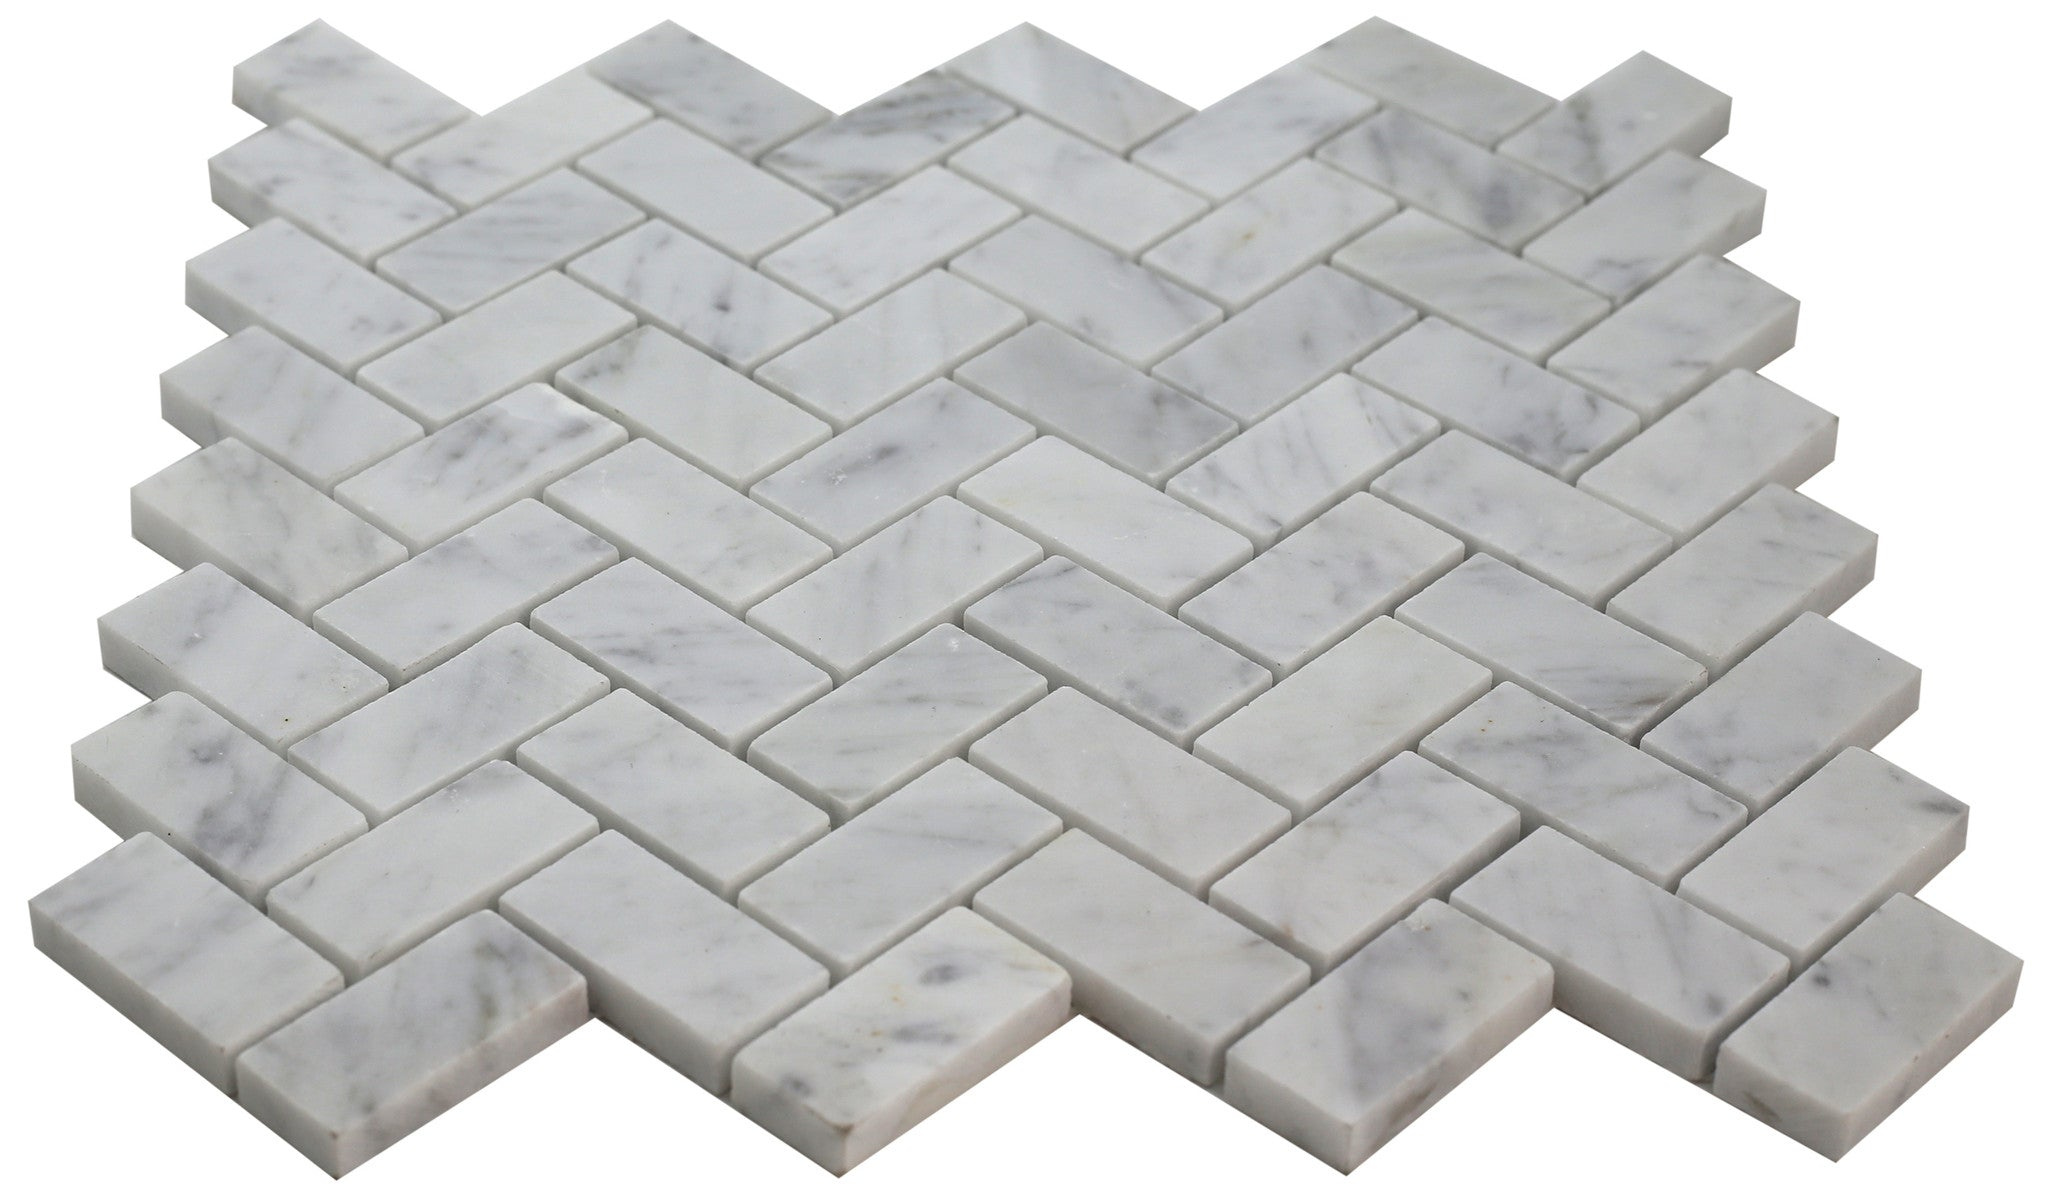 Bianco Carrara Marbles by Marble Tile Depot